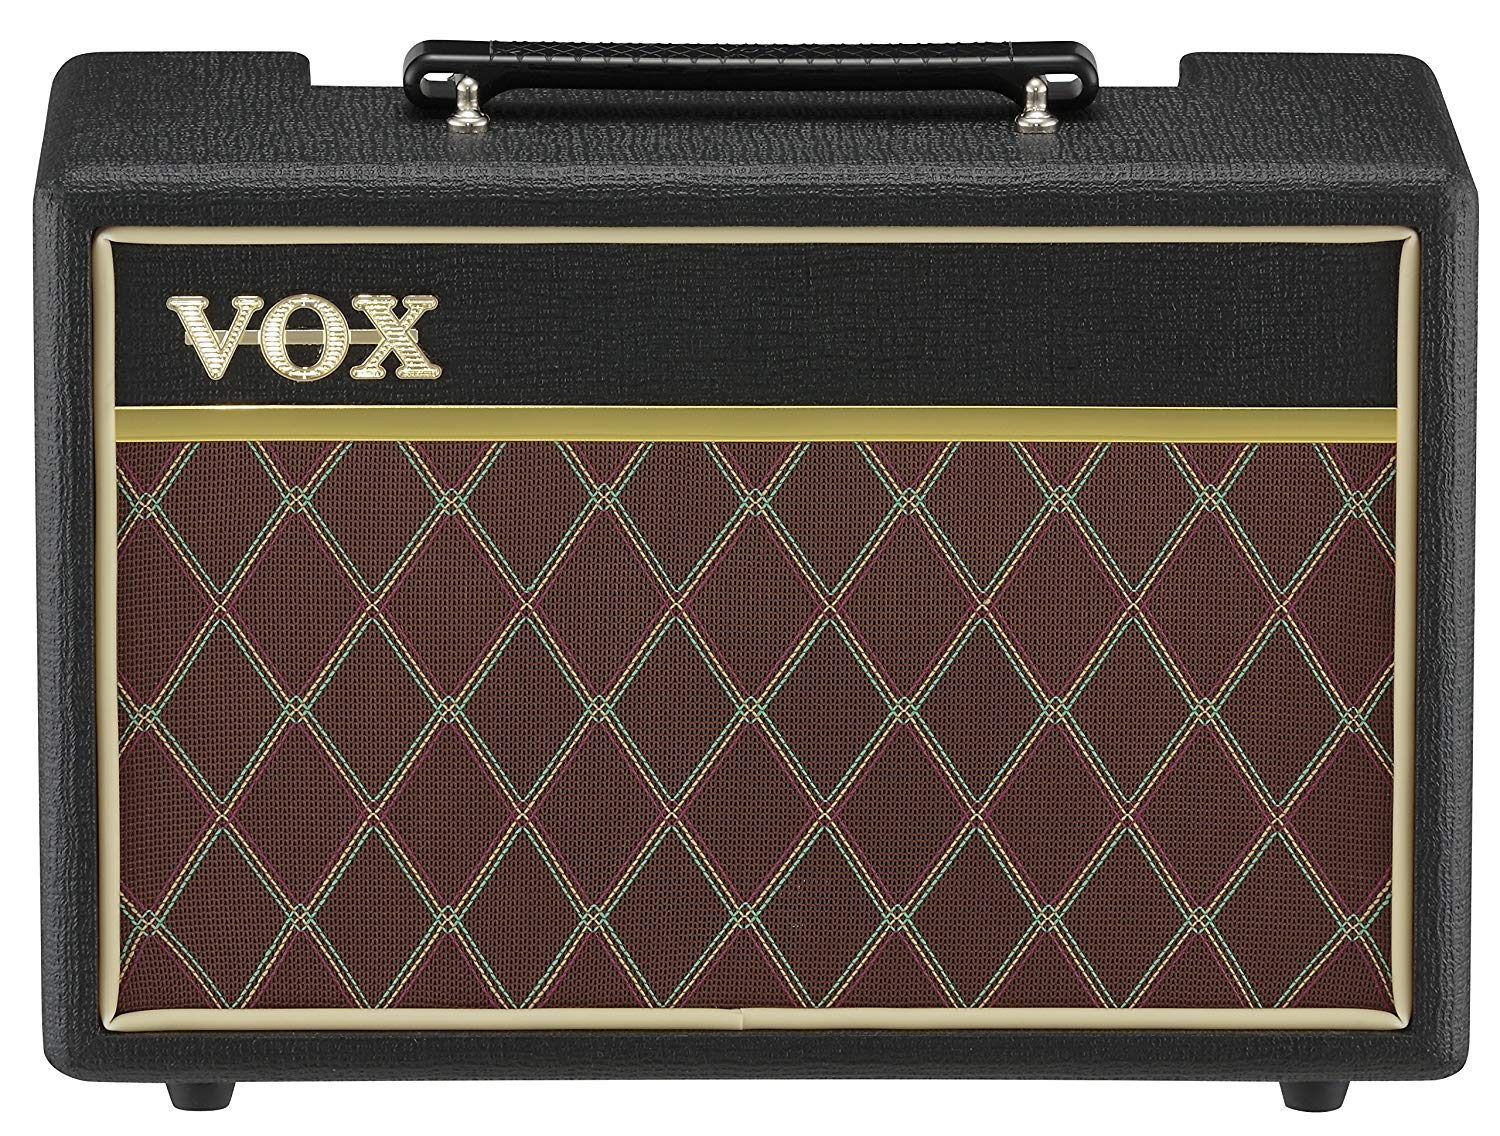 Front View of the VOX Pathfinder 10W Combo Amplifier